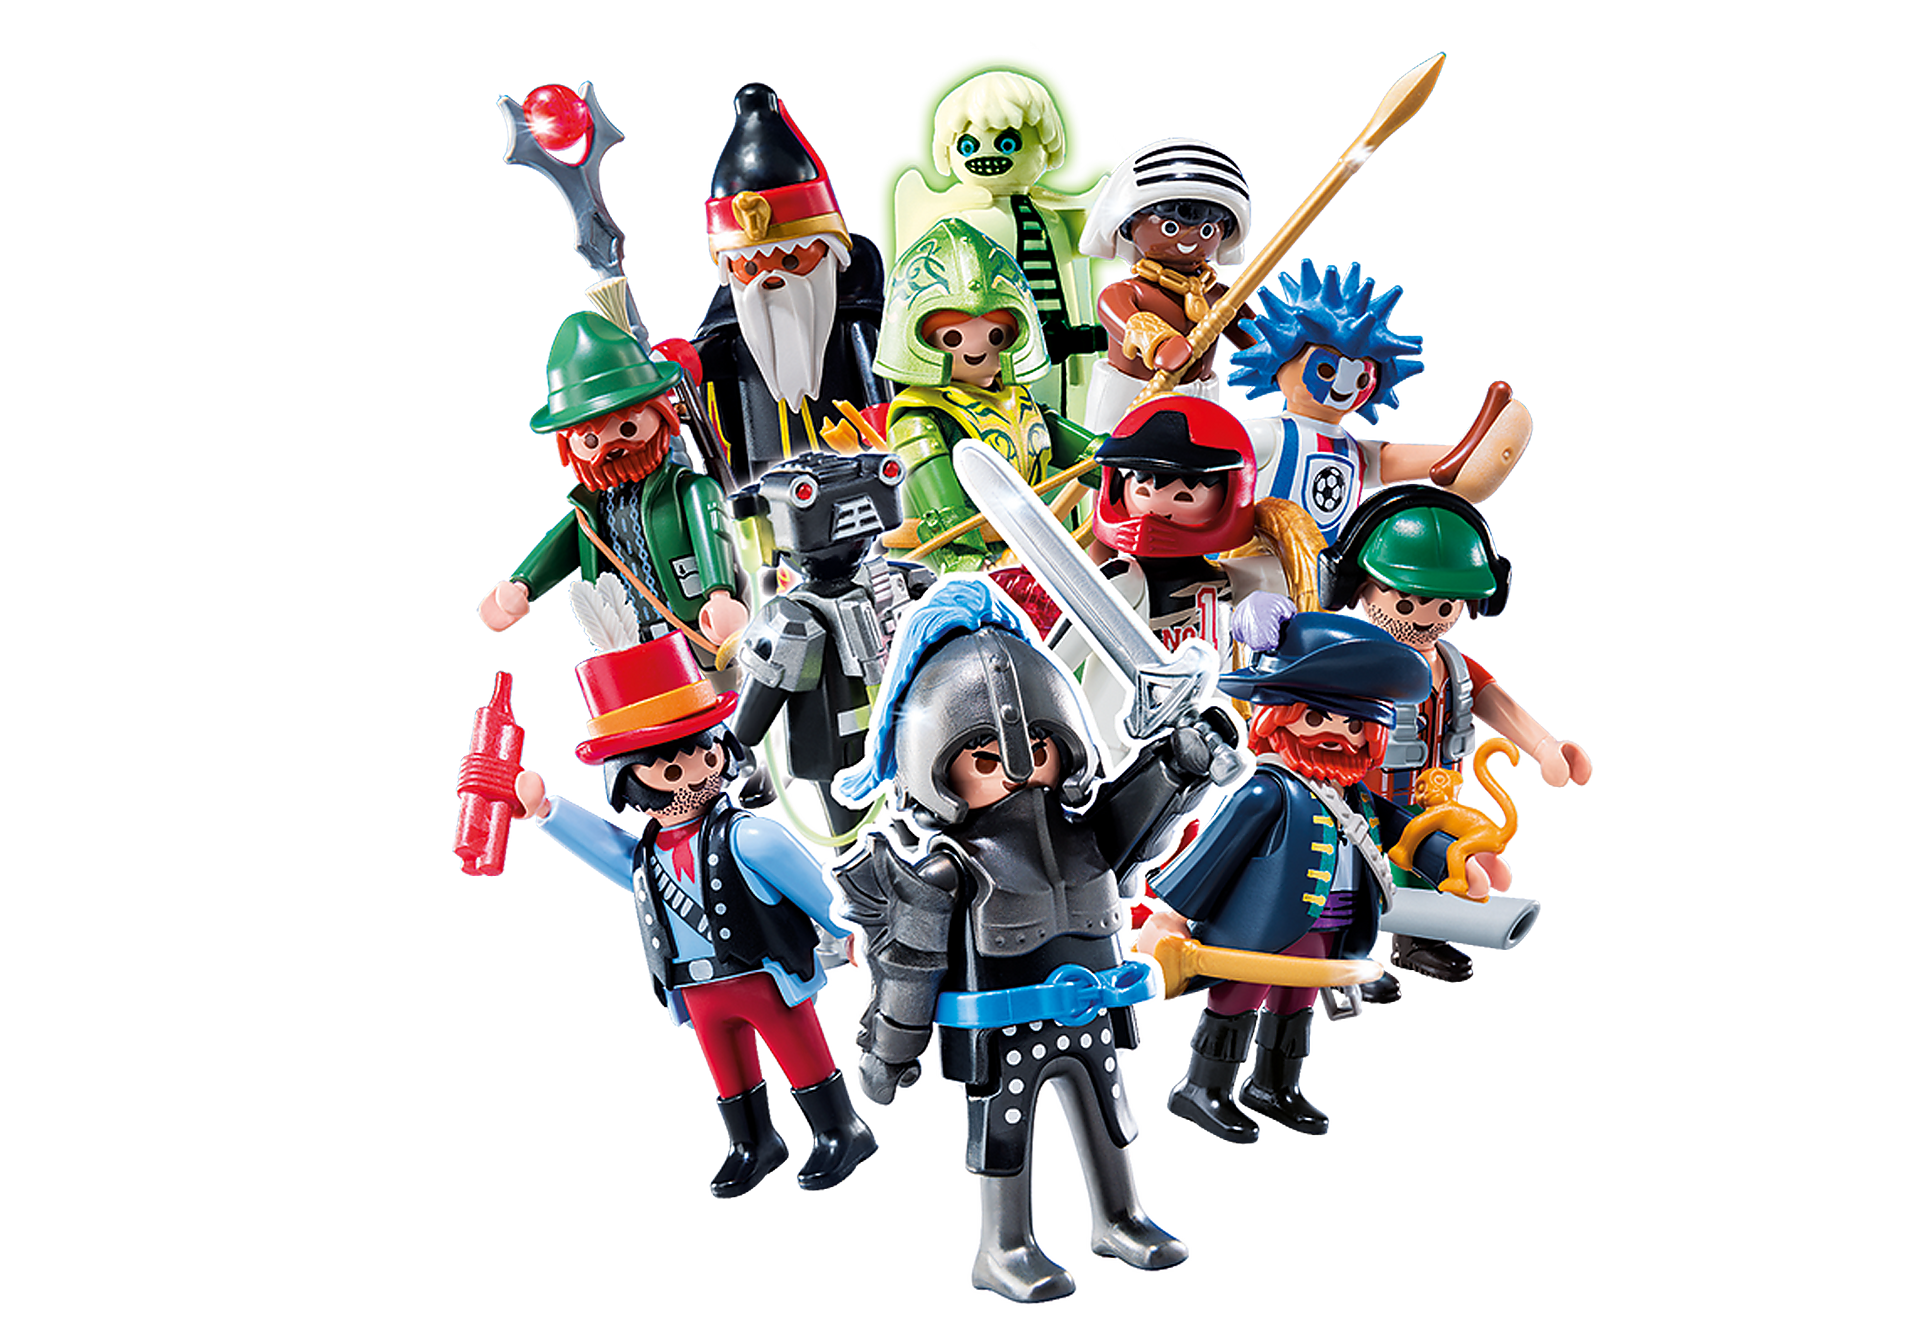 6840 PLAYMOBIL-Figures Boys (Serie 10) zoom image1